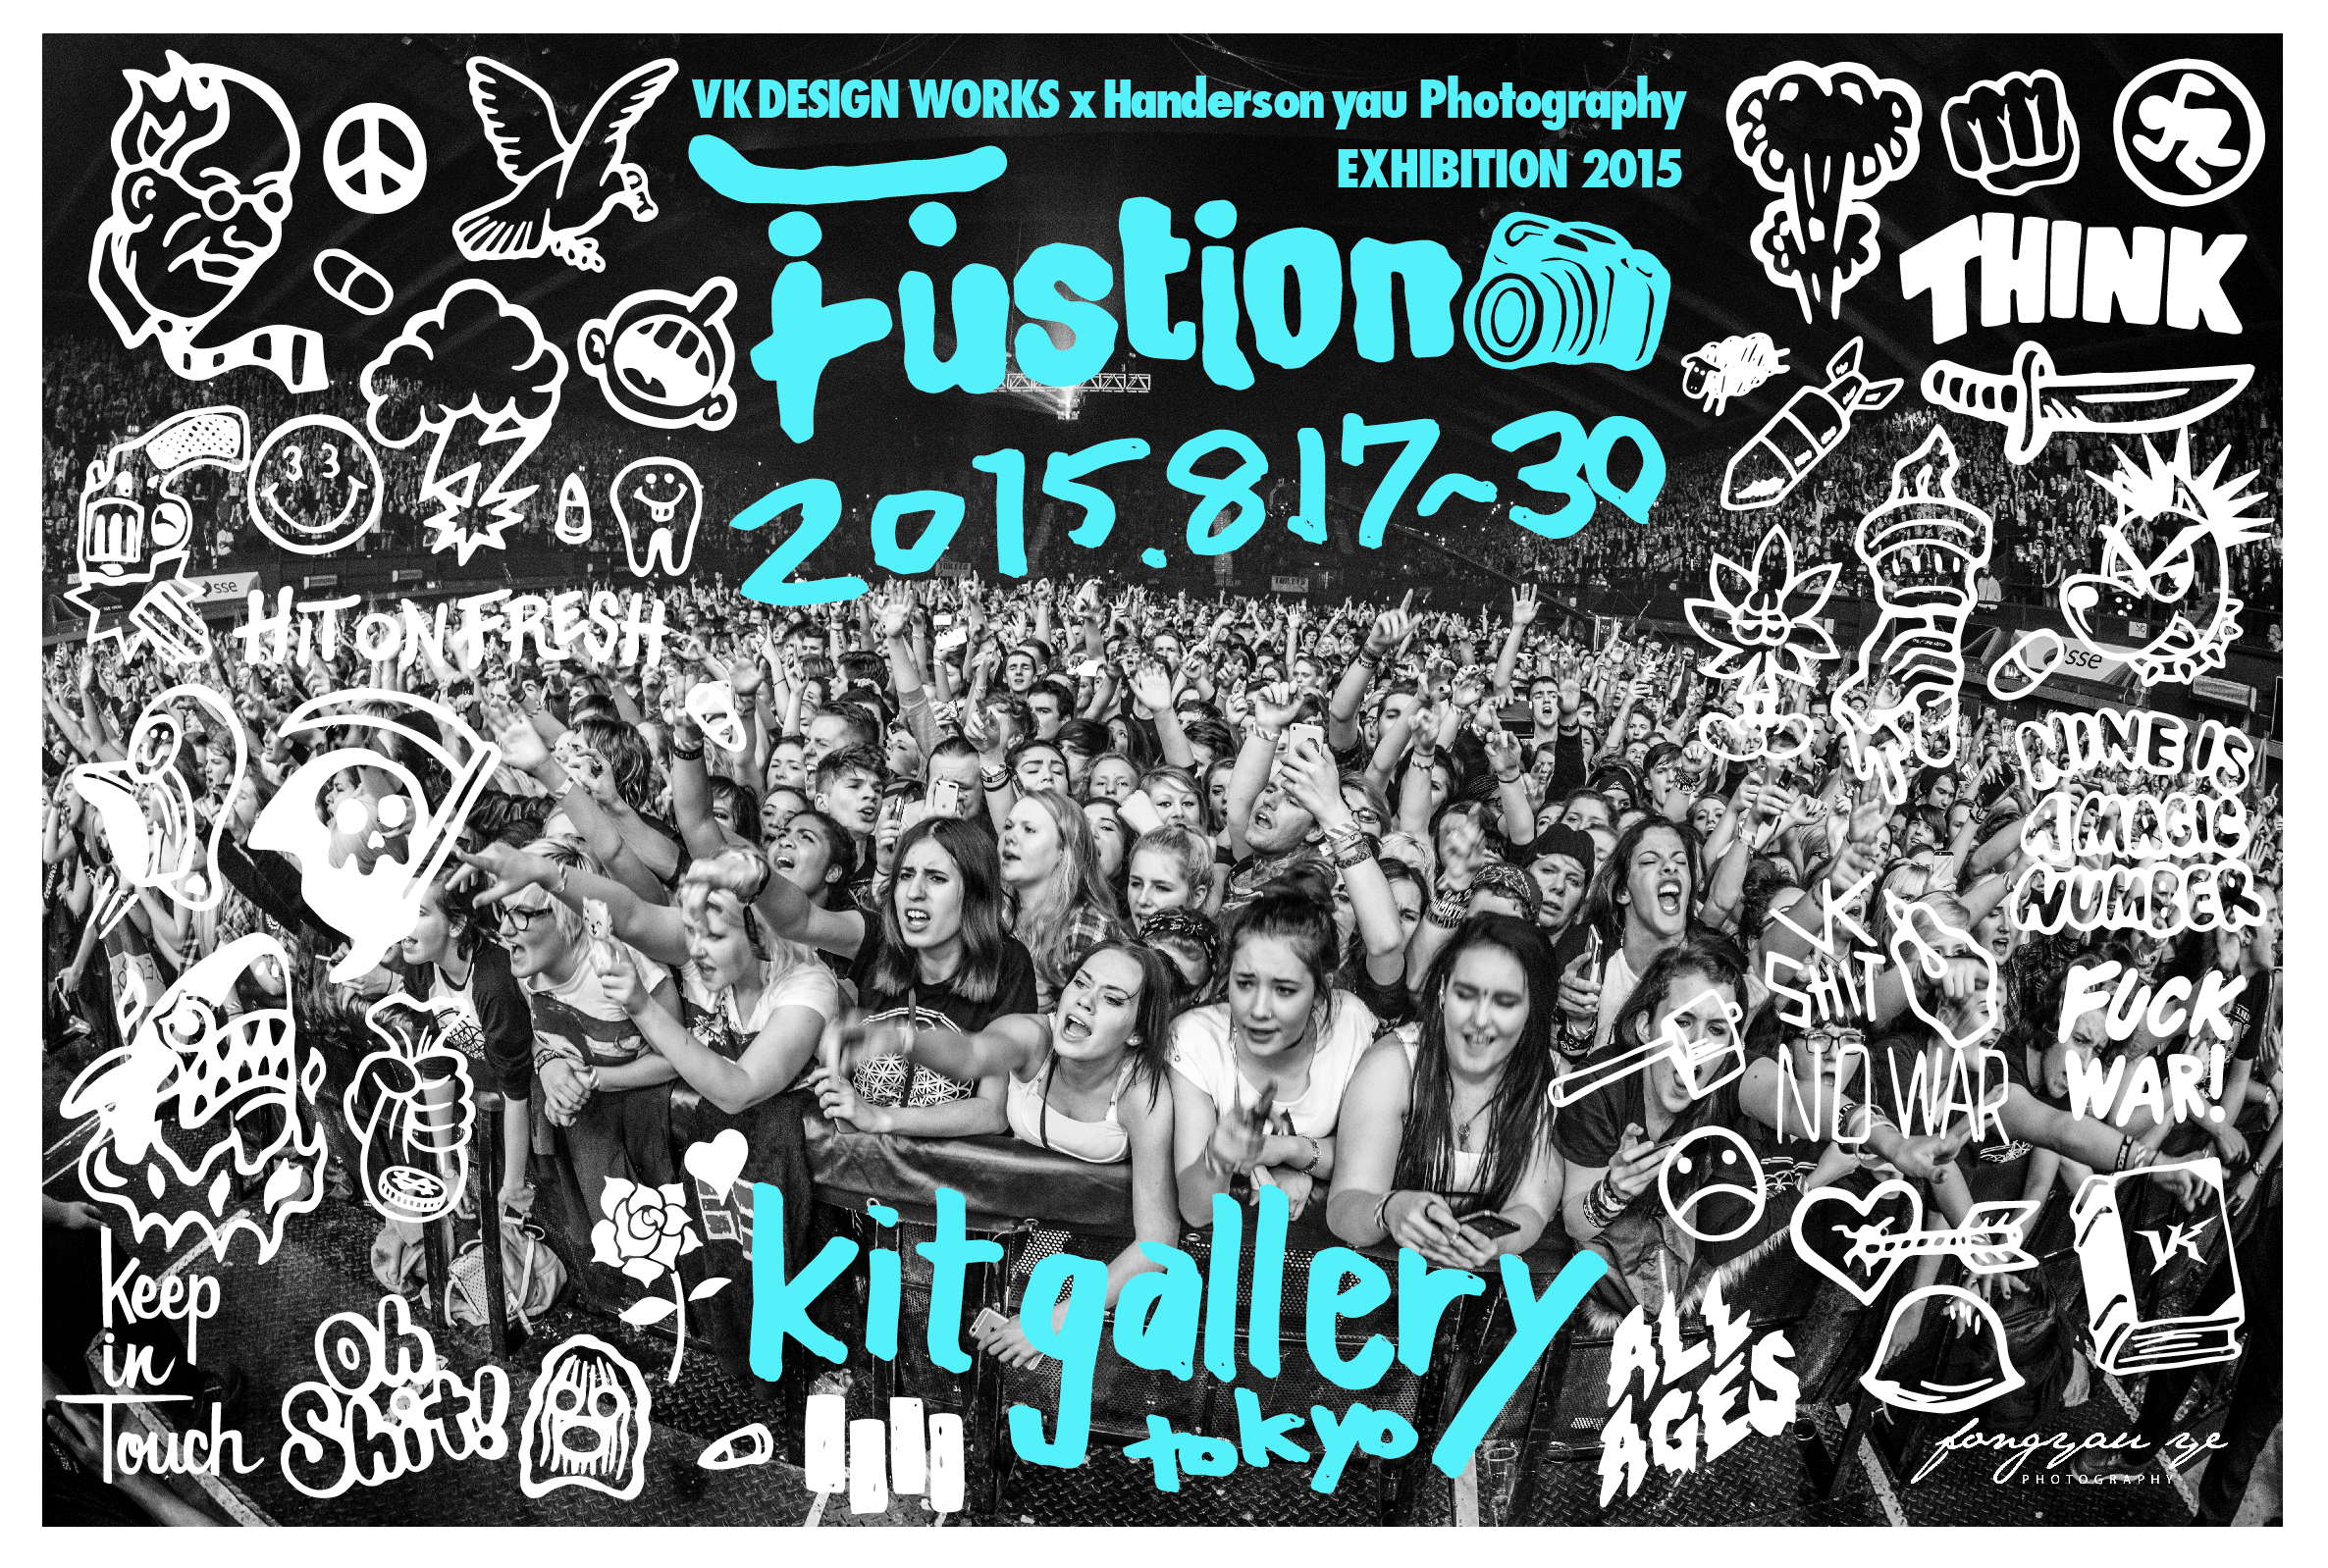 http://kit-gallery.com/schedule/files/fusion.jpg